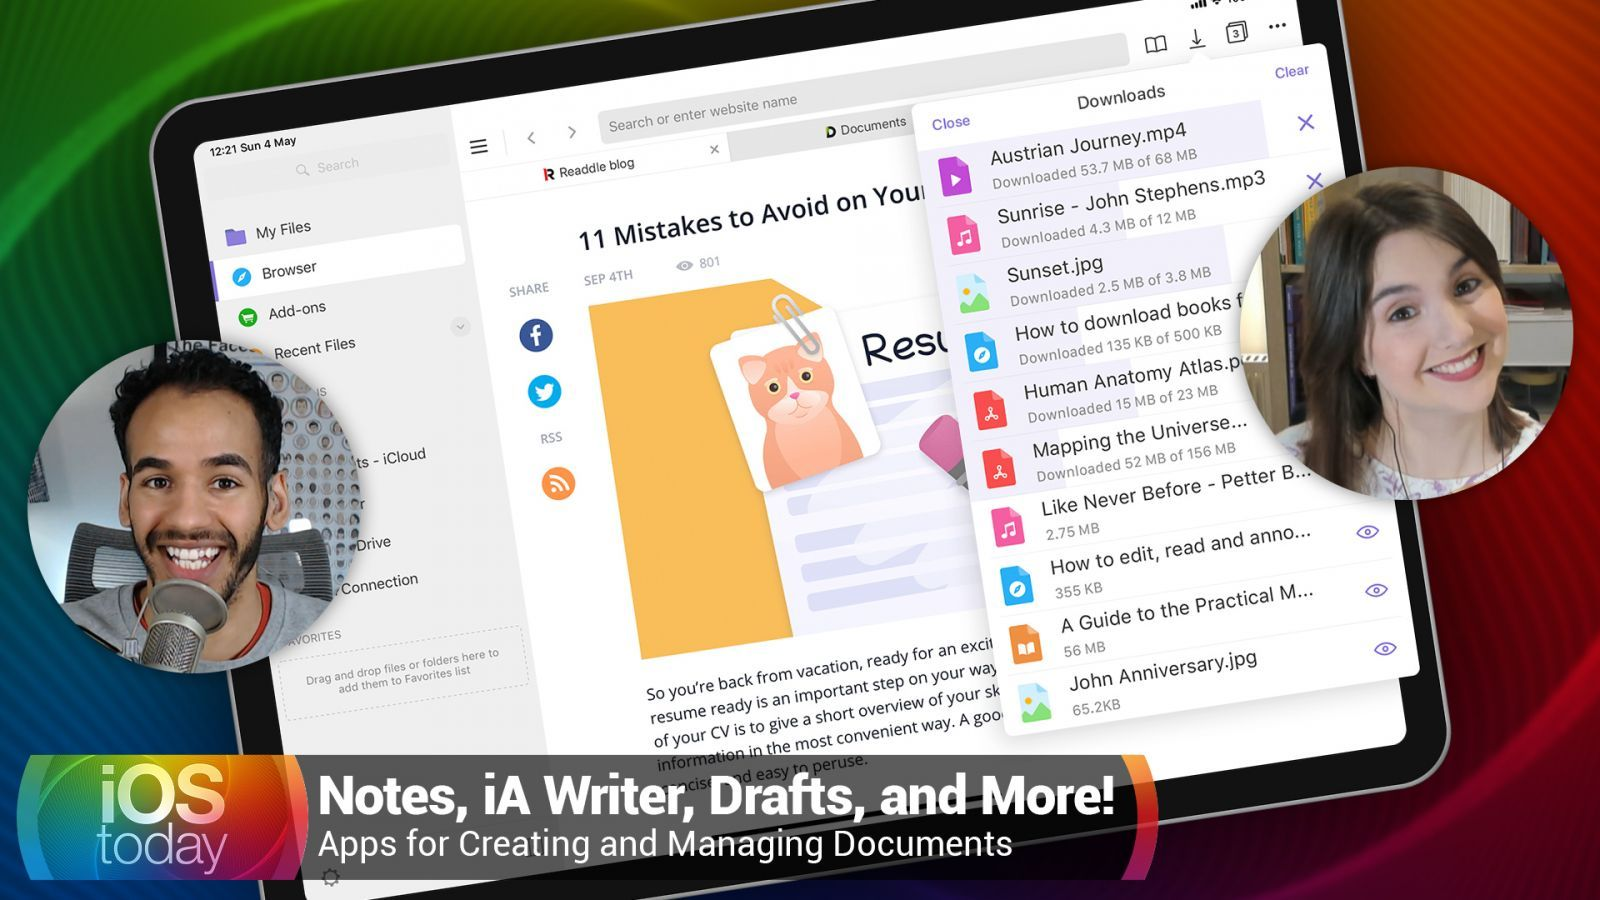 Apps for Creating and Managing Documents - Notes, iA Writer, Drafts, and More!